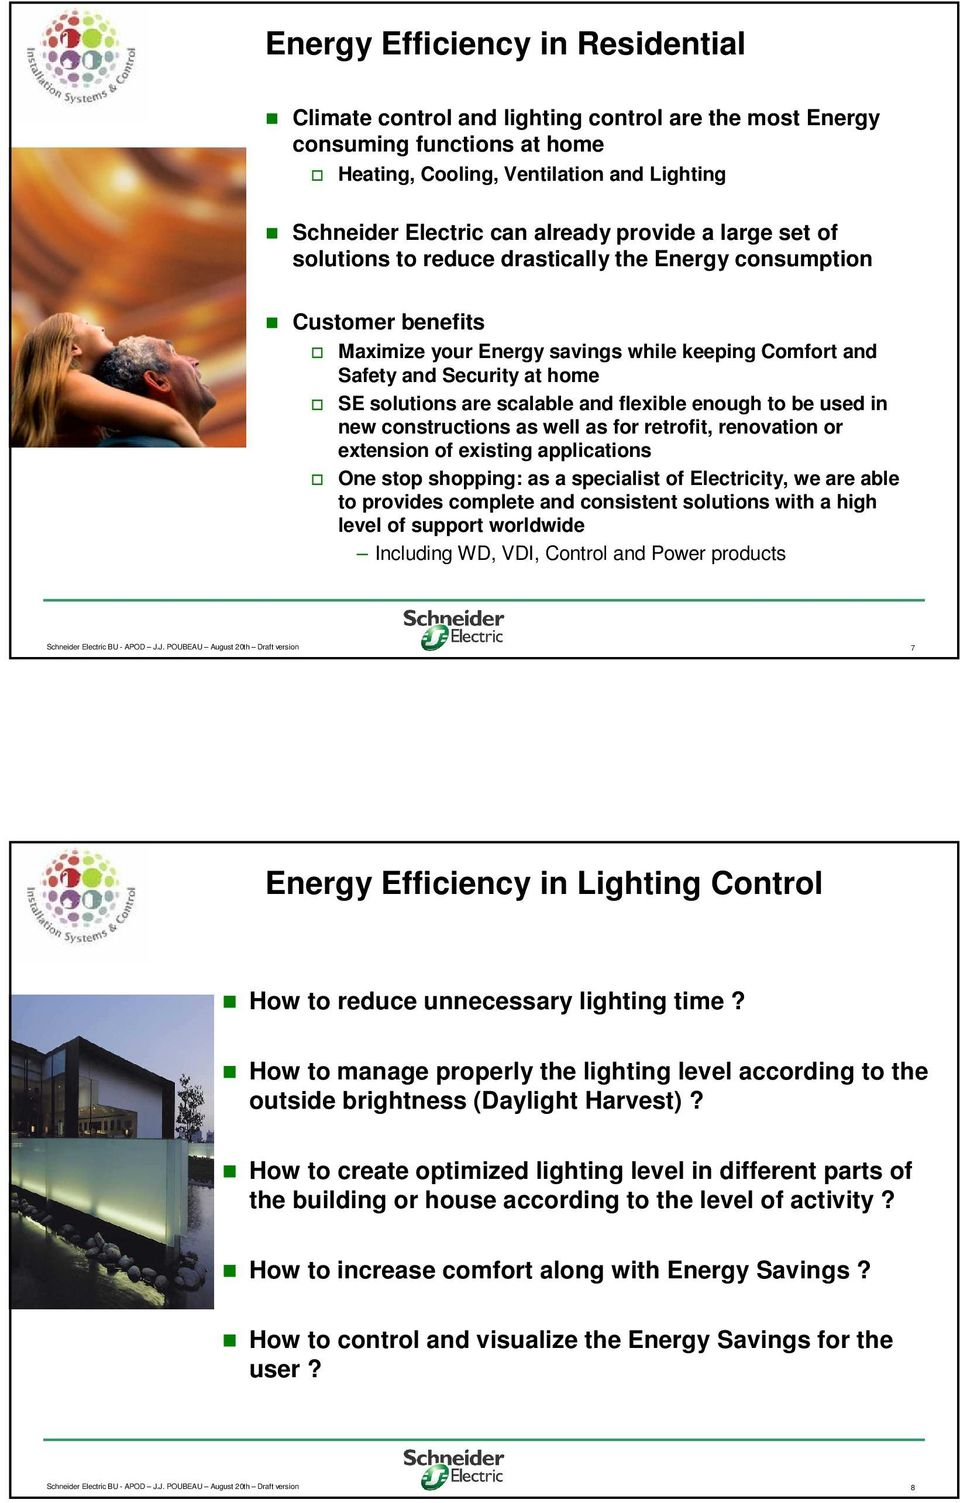 Schneider Electric can already provide a large set of solutions to reduce drastically the Energy consumption Customer benefits Maximize your Energy savings while keeping Comfort and Safety and